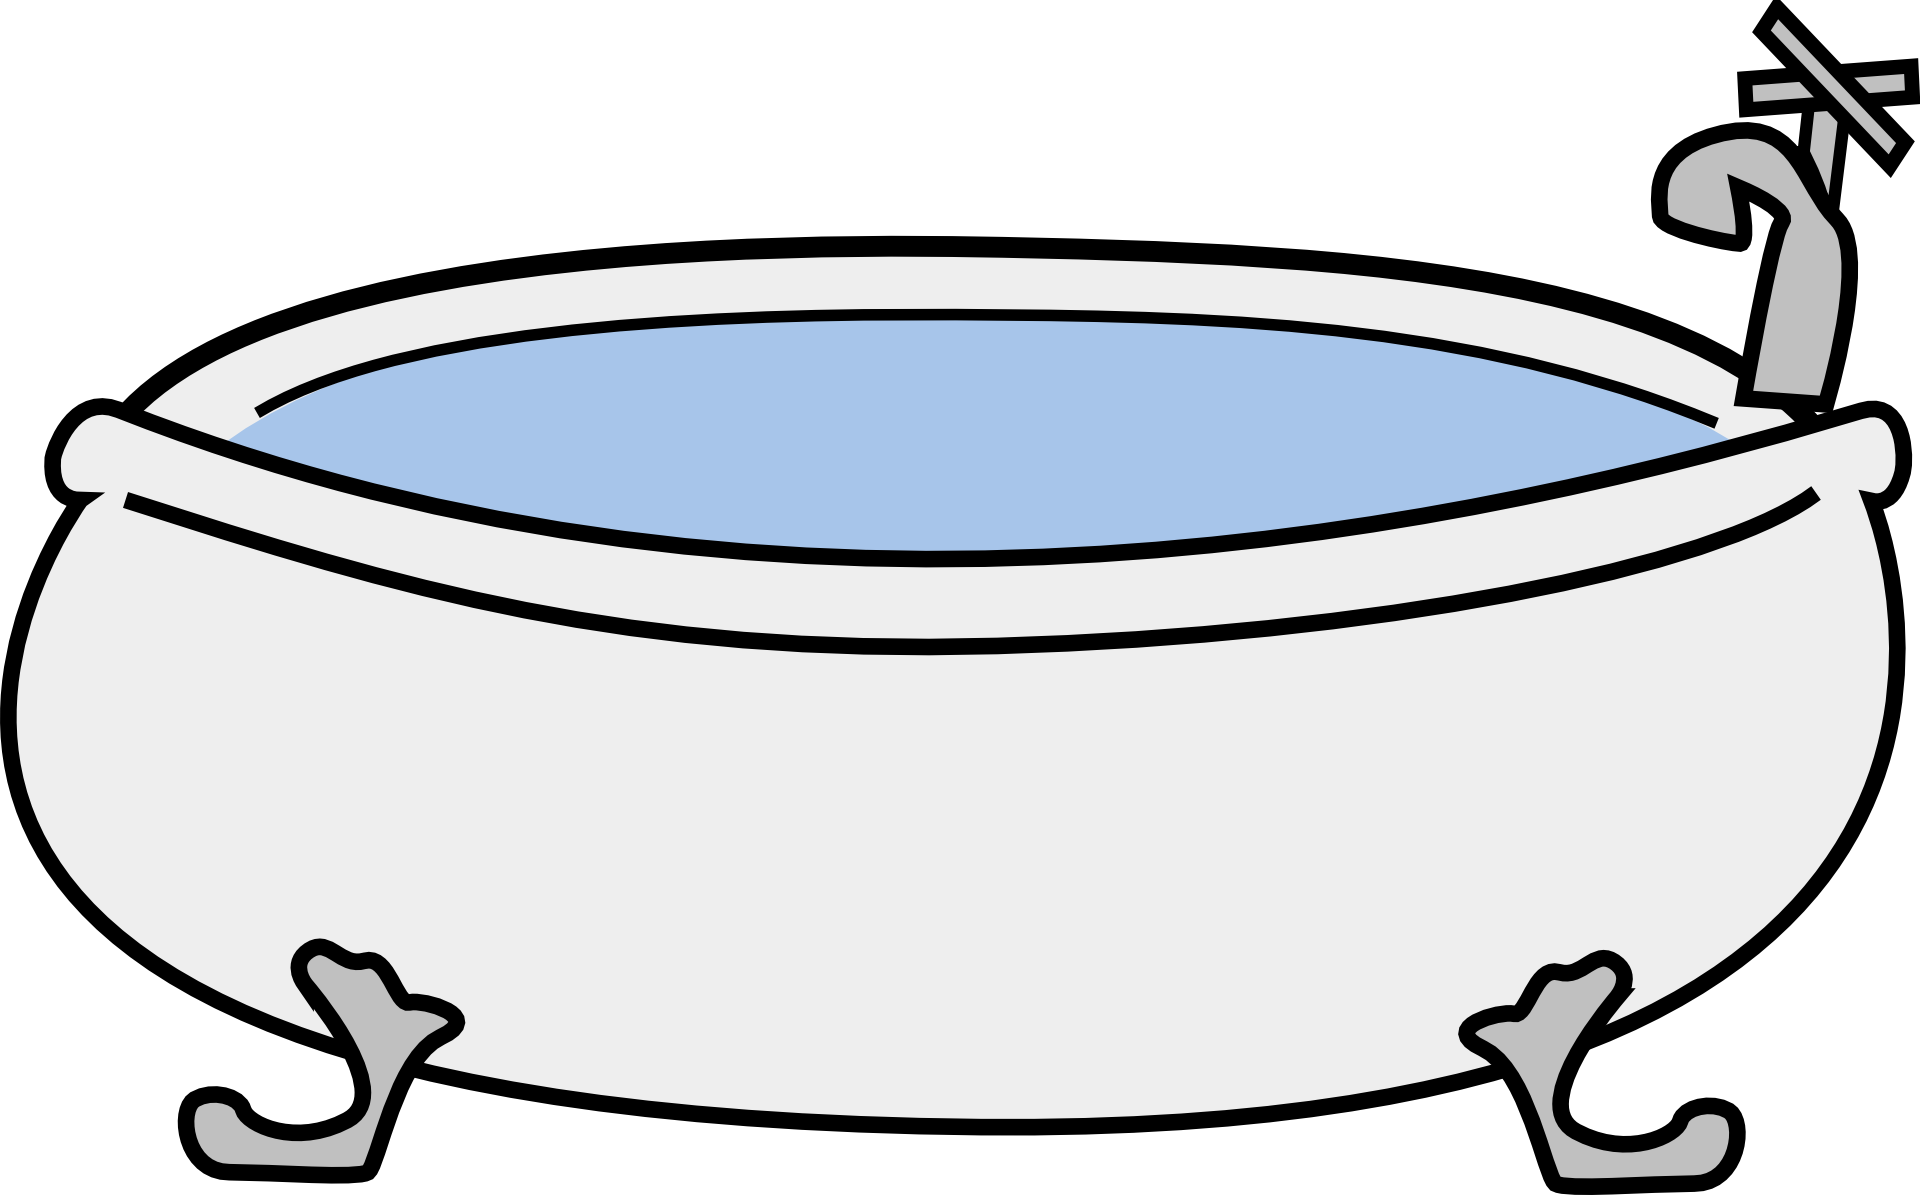 Apple butter cauldron clipart picture Bathtub Hot tub Clip art - Dream bathtub 1920*1195 transprent Png ... picture